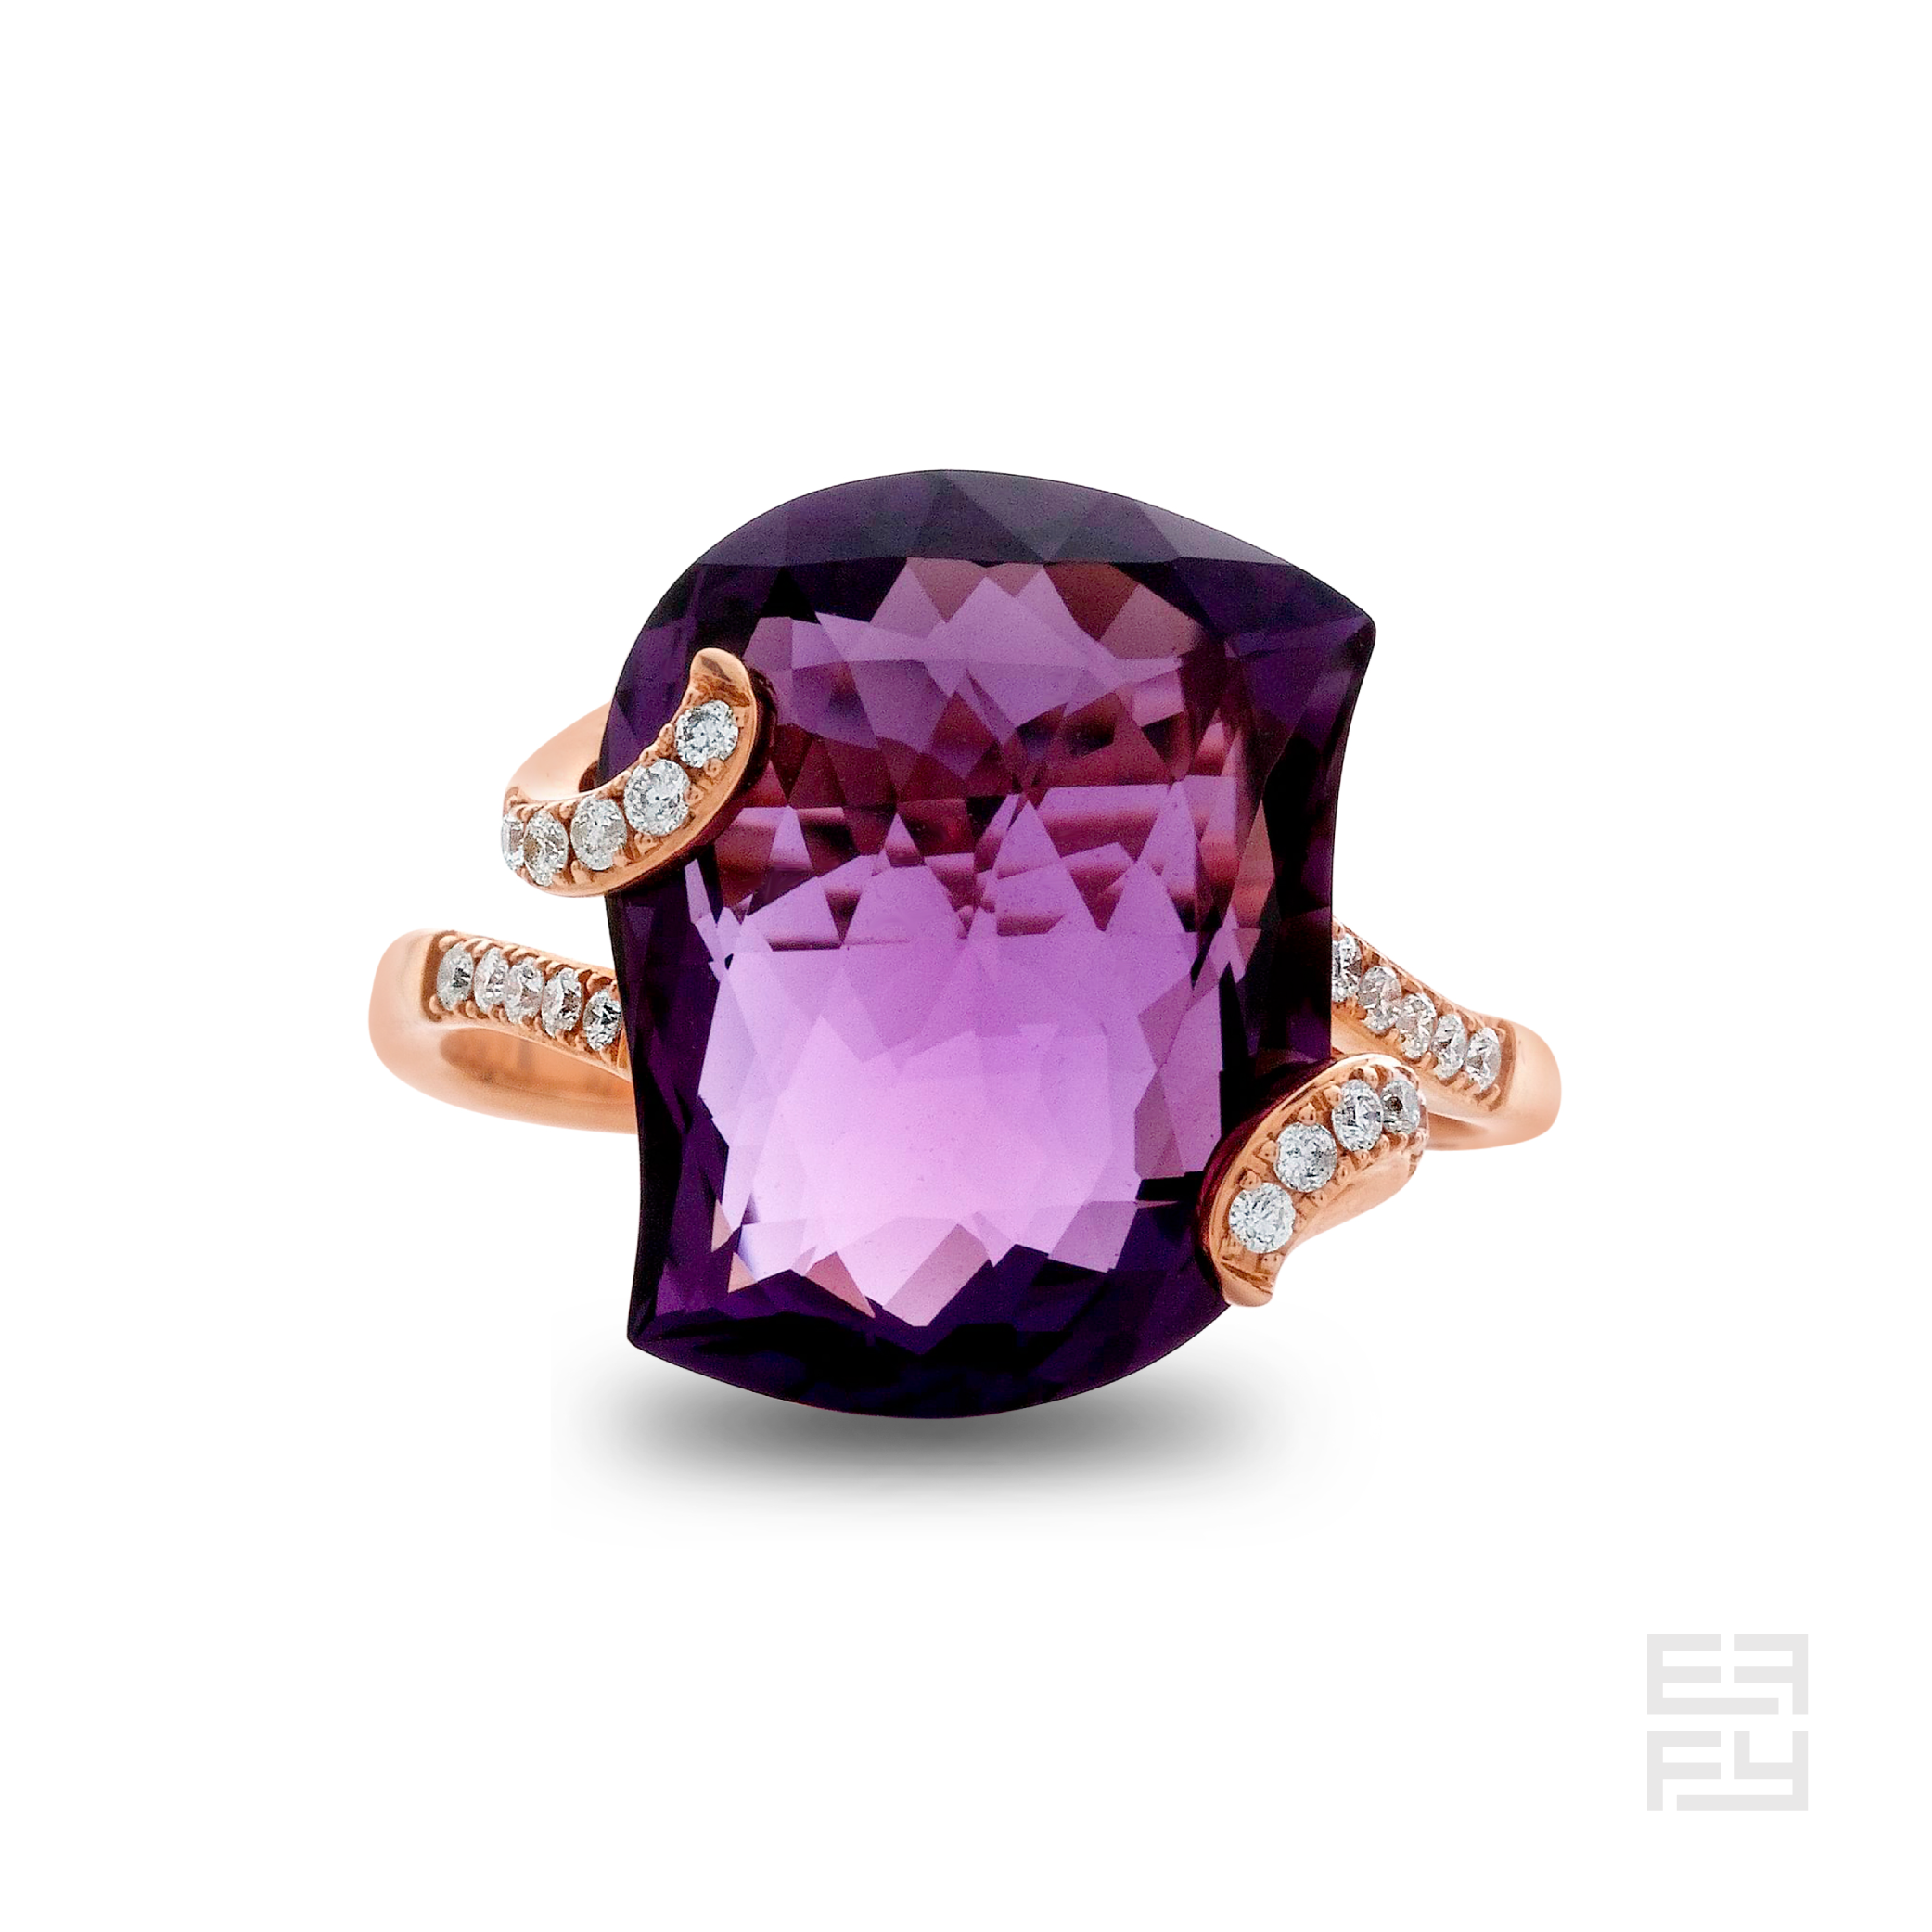 The amethyst sparkle on top of our Sunday best.  Available by Special Order 1.877.ASK.EFFY